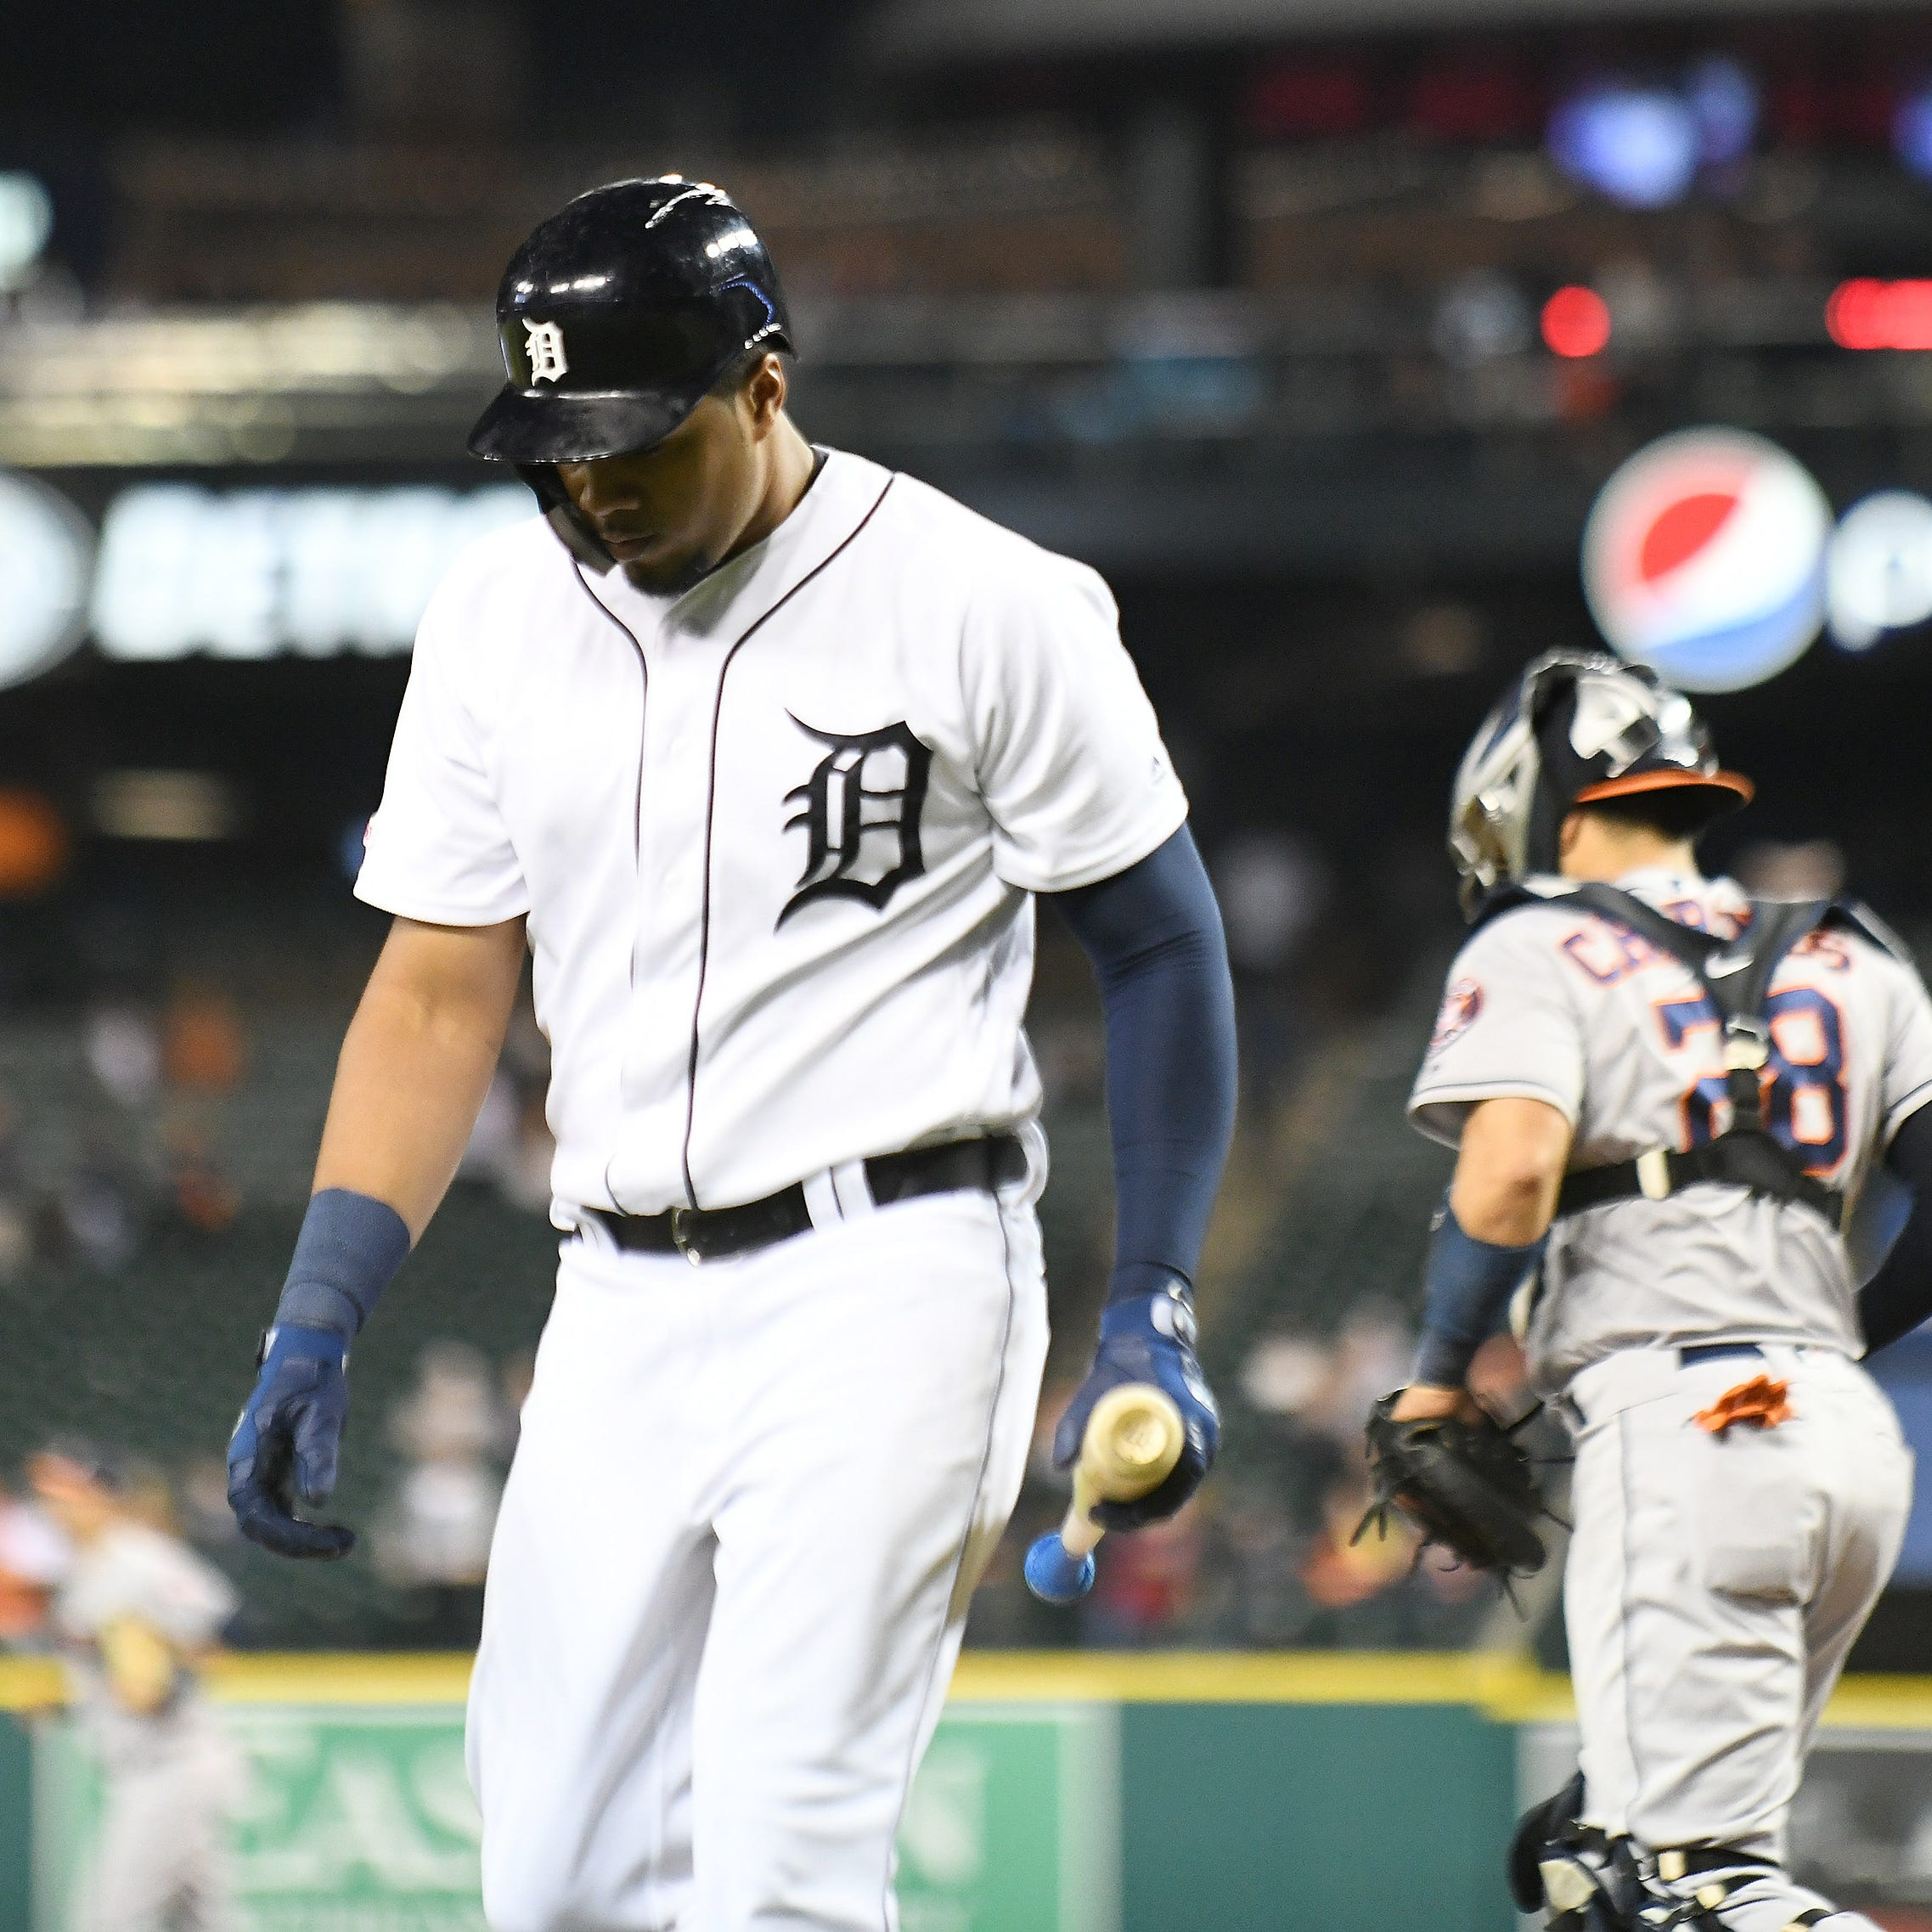 'He needs to find himself:' Tigers option Candelario to Triple-A Toledo